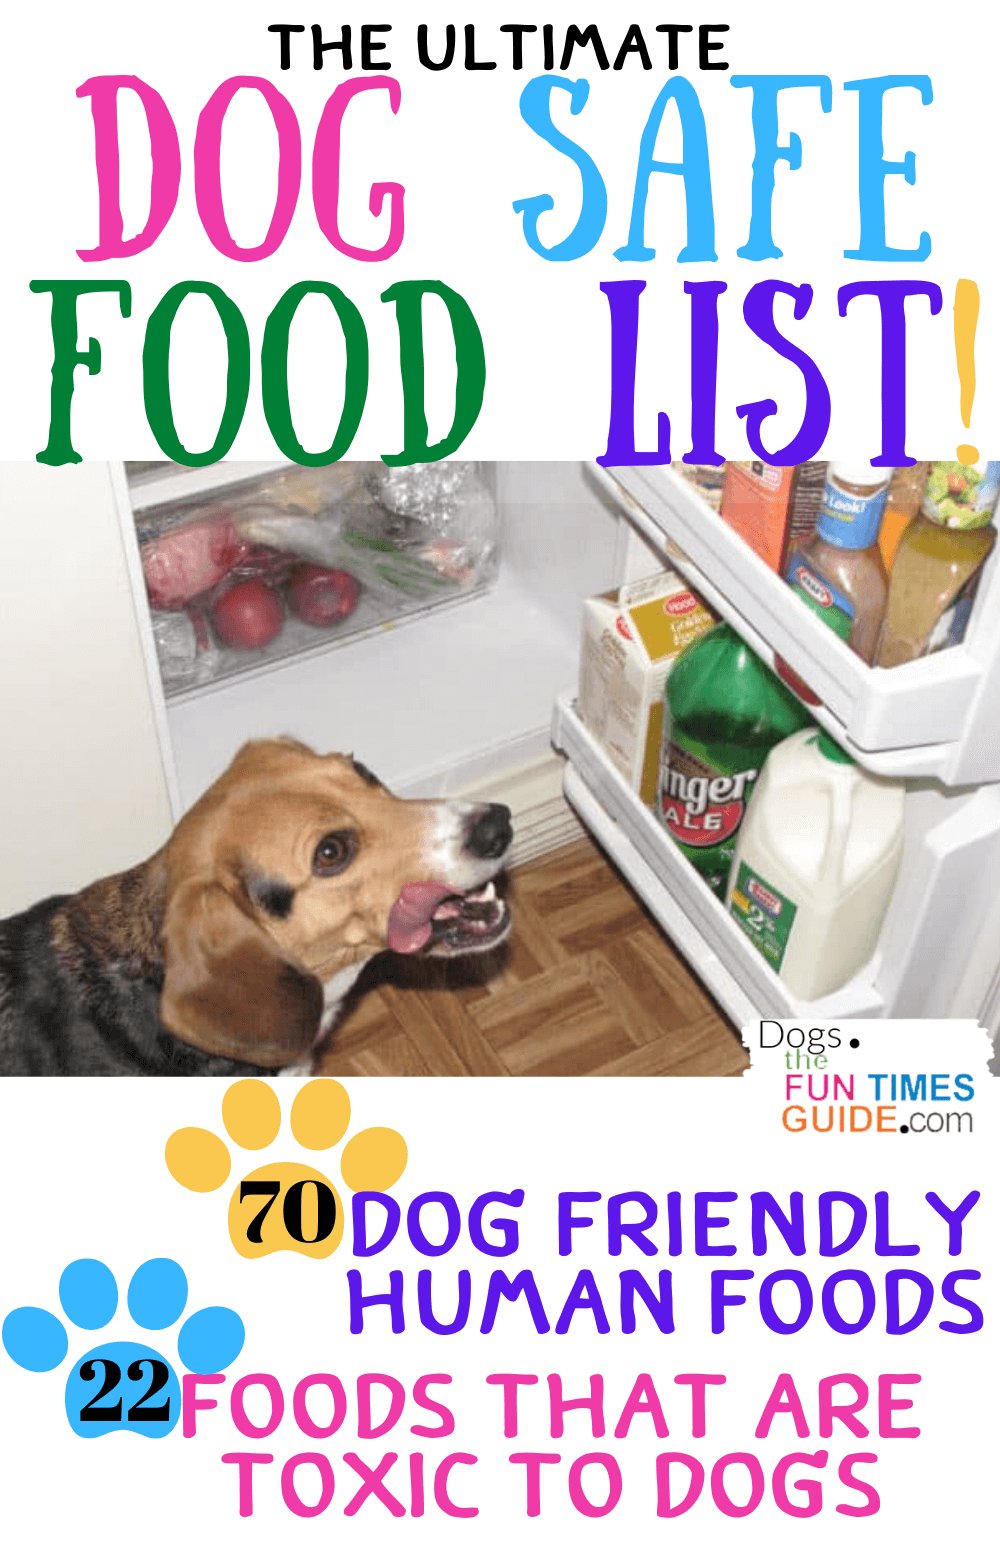 Are Human Foods OK For Dogs To Eat? See Which Ones Are Safe... And Which Ones Are NOT!